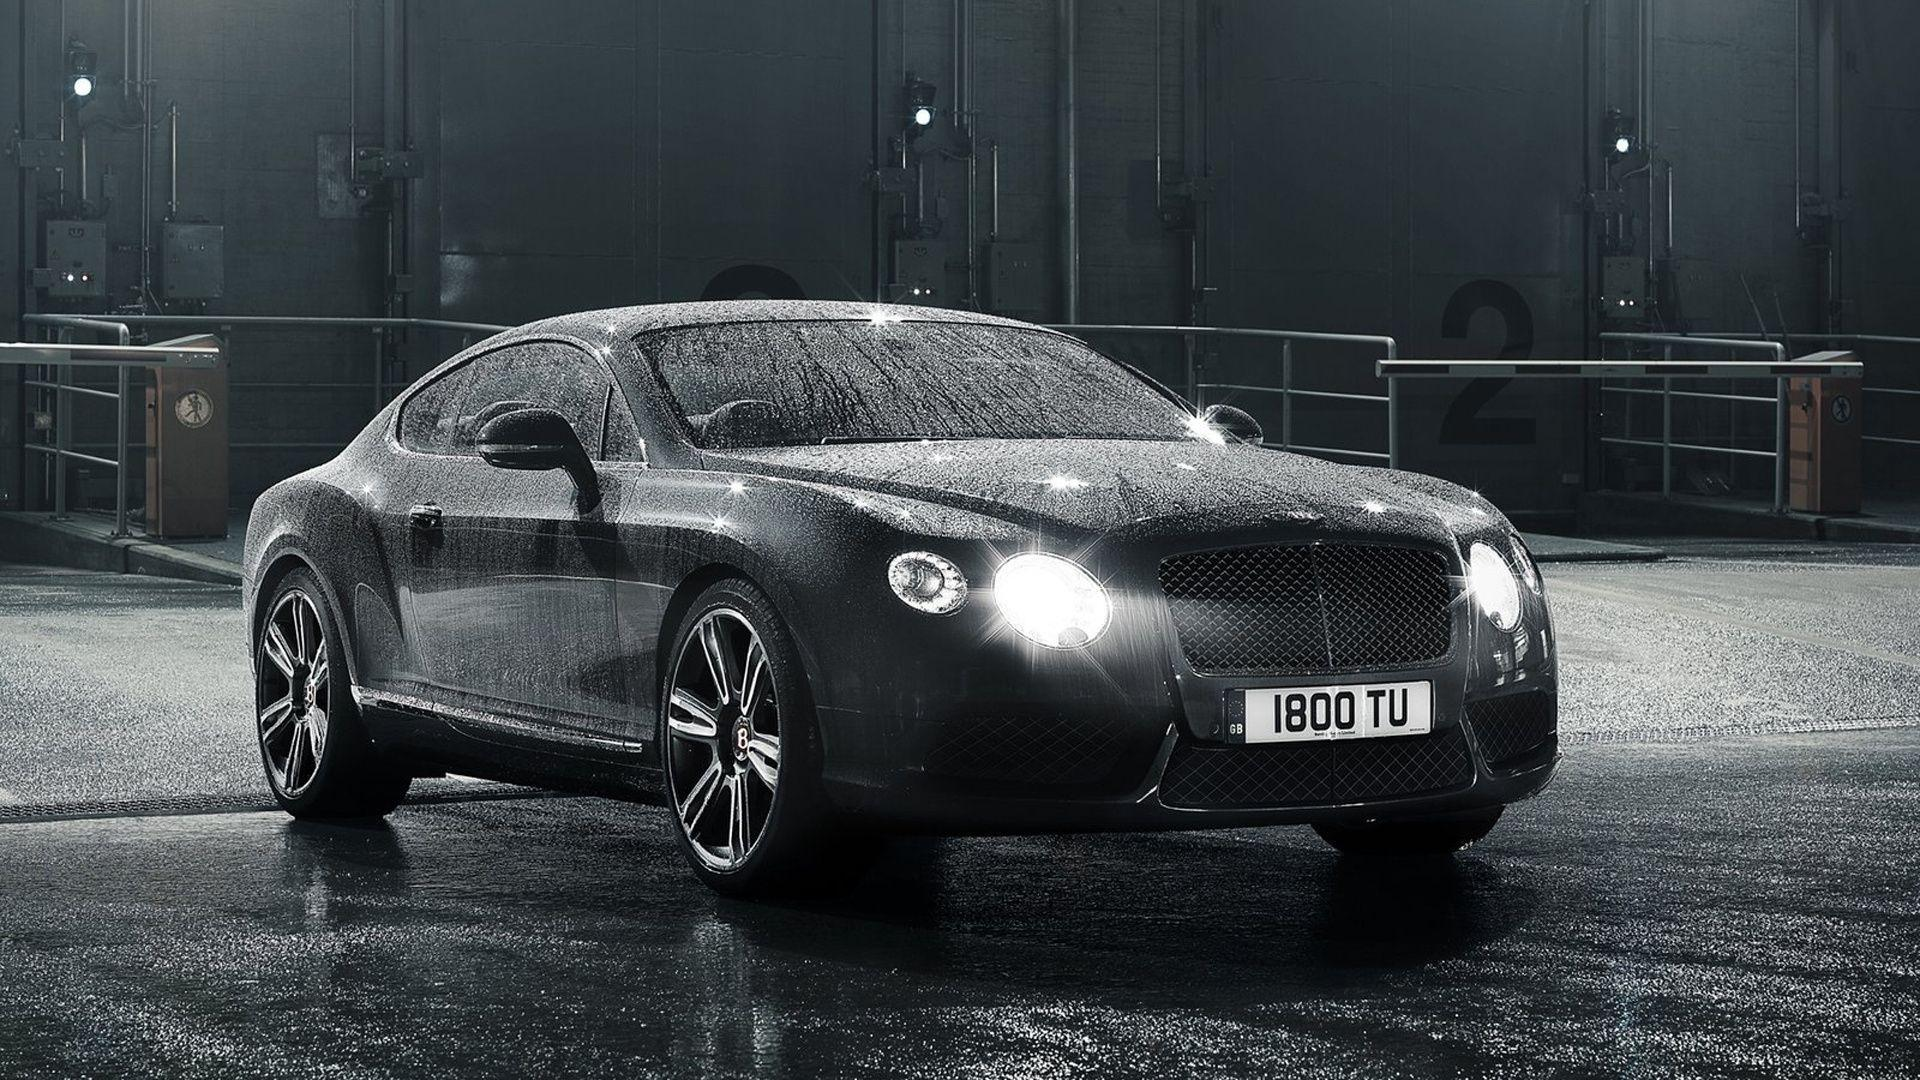 Bentley Continental GT Wallpaper 48798 1920x1080 px ~ HDWallSource.com